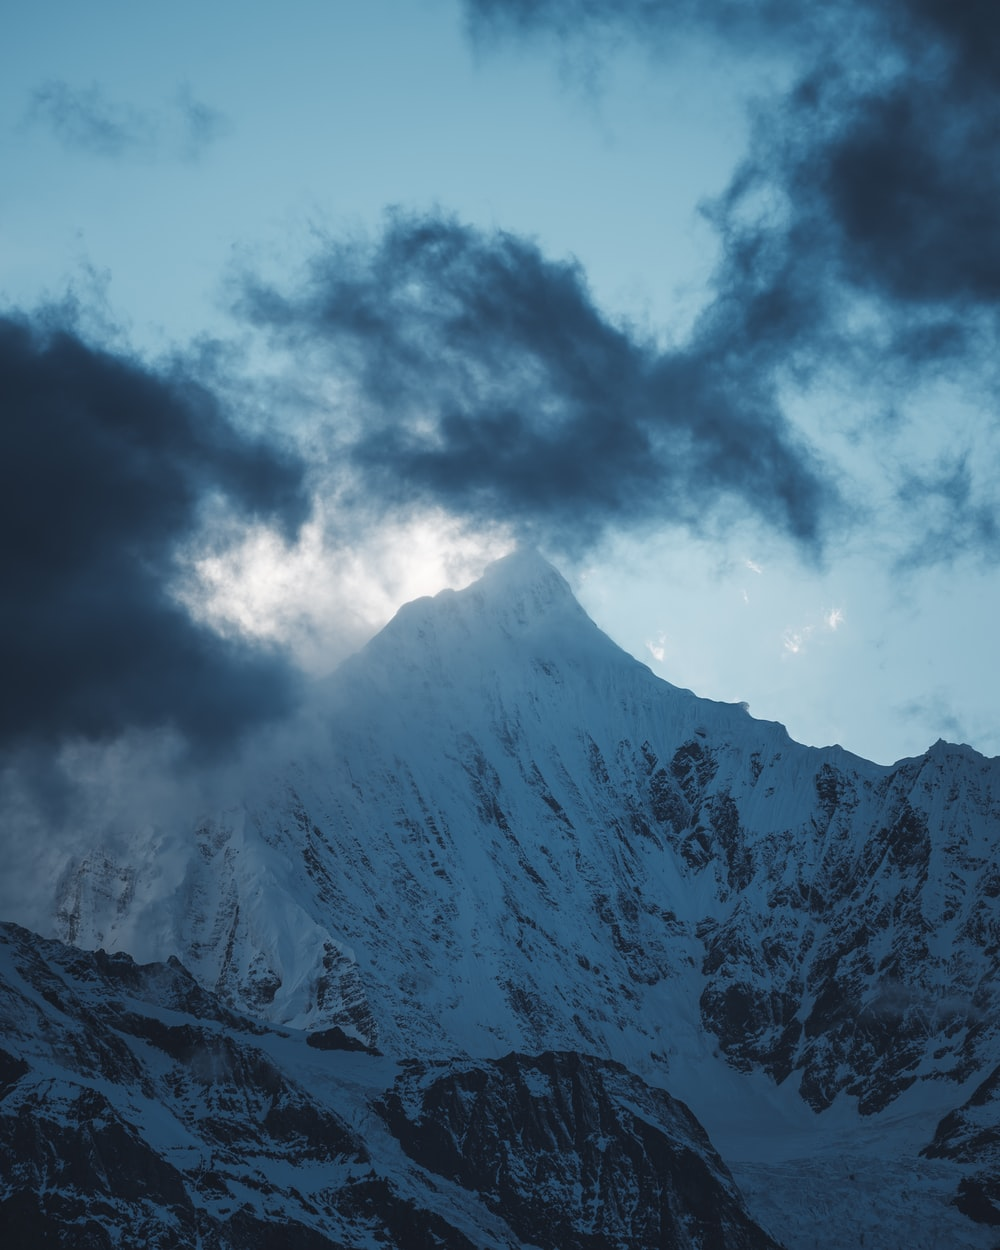 snow-covered mountain under gray clouds at daytime